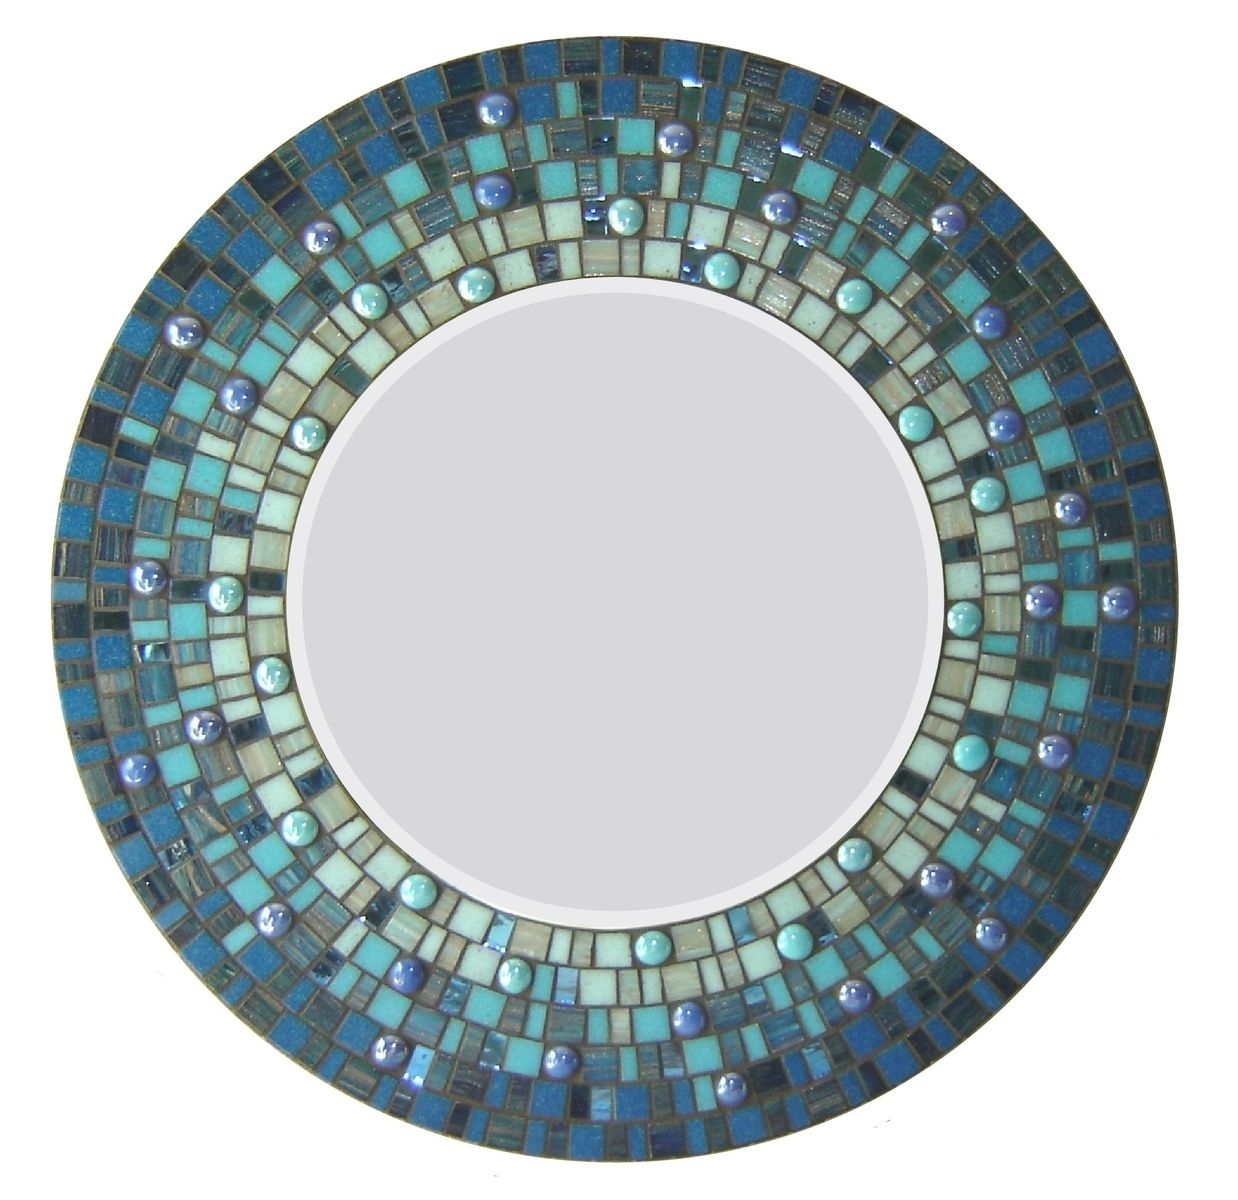 Hand Crafted Round Mosaic Wall Mirror Blue Opus Mosaics For Mosaic Wall Mirrors (Image 7 of 15)